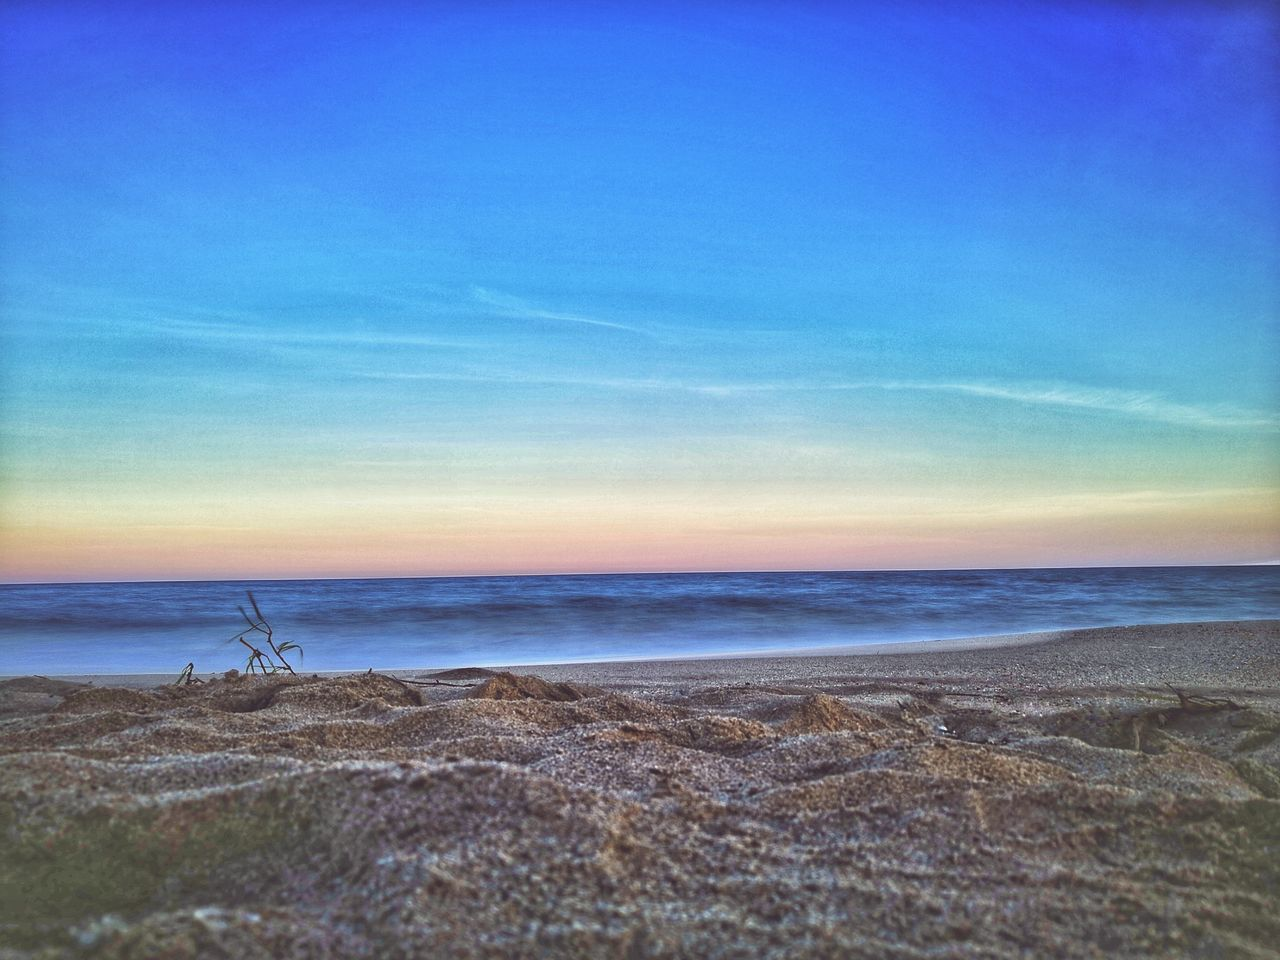 sea, beach, water, nature, beauty in nature, scenics, horizon over water, tranquility, tranquil scene, blue, no people, sand, outdoors, sky, sunset, day, wave